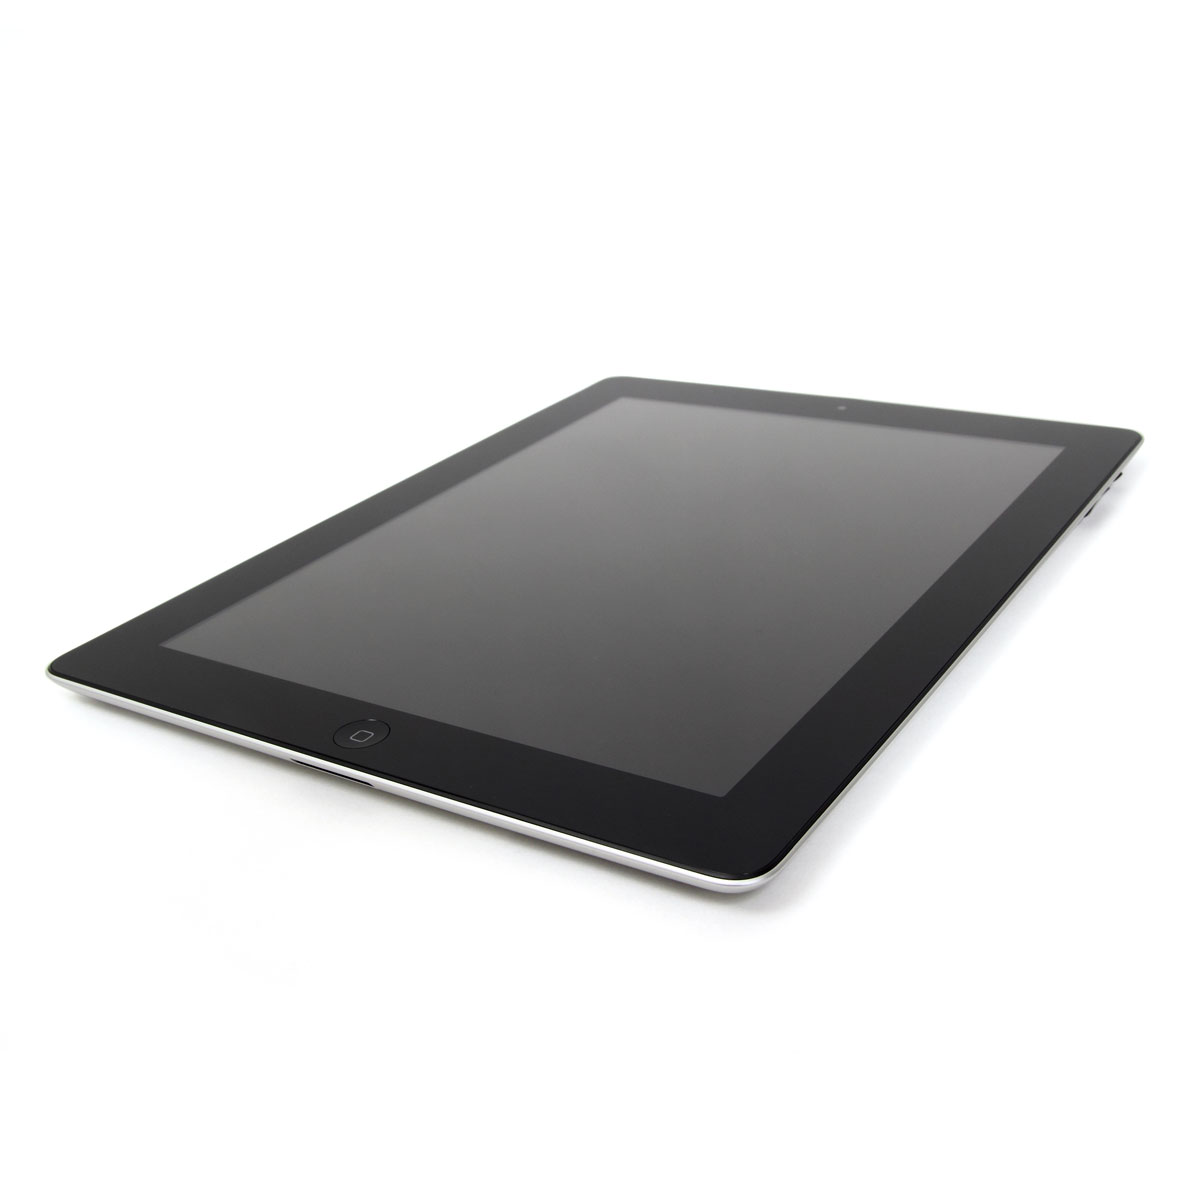 apple ipad 2 wi fi 16 go noir mc769nf a achat vente tablette tactile sur. Black Bedroom Furniture Sets. Home Design Ideas